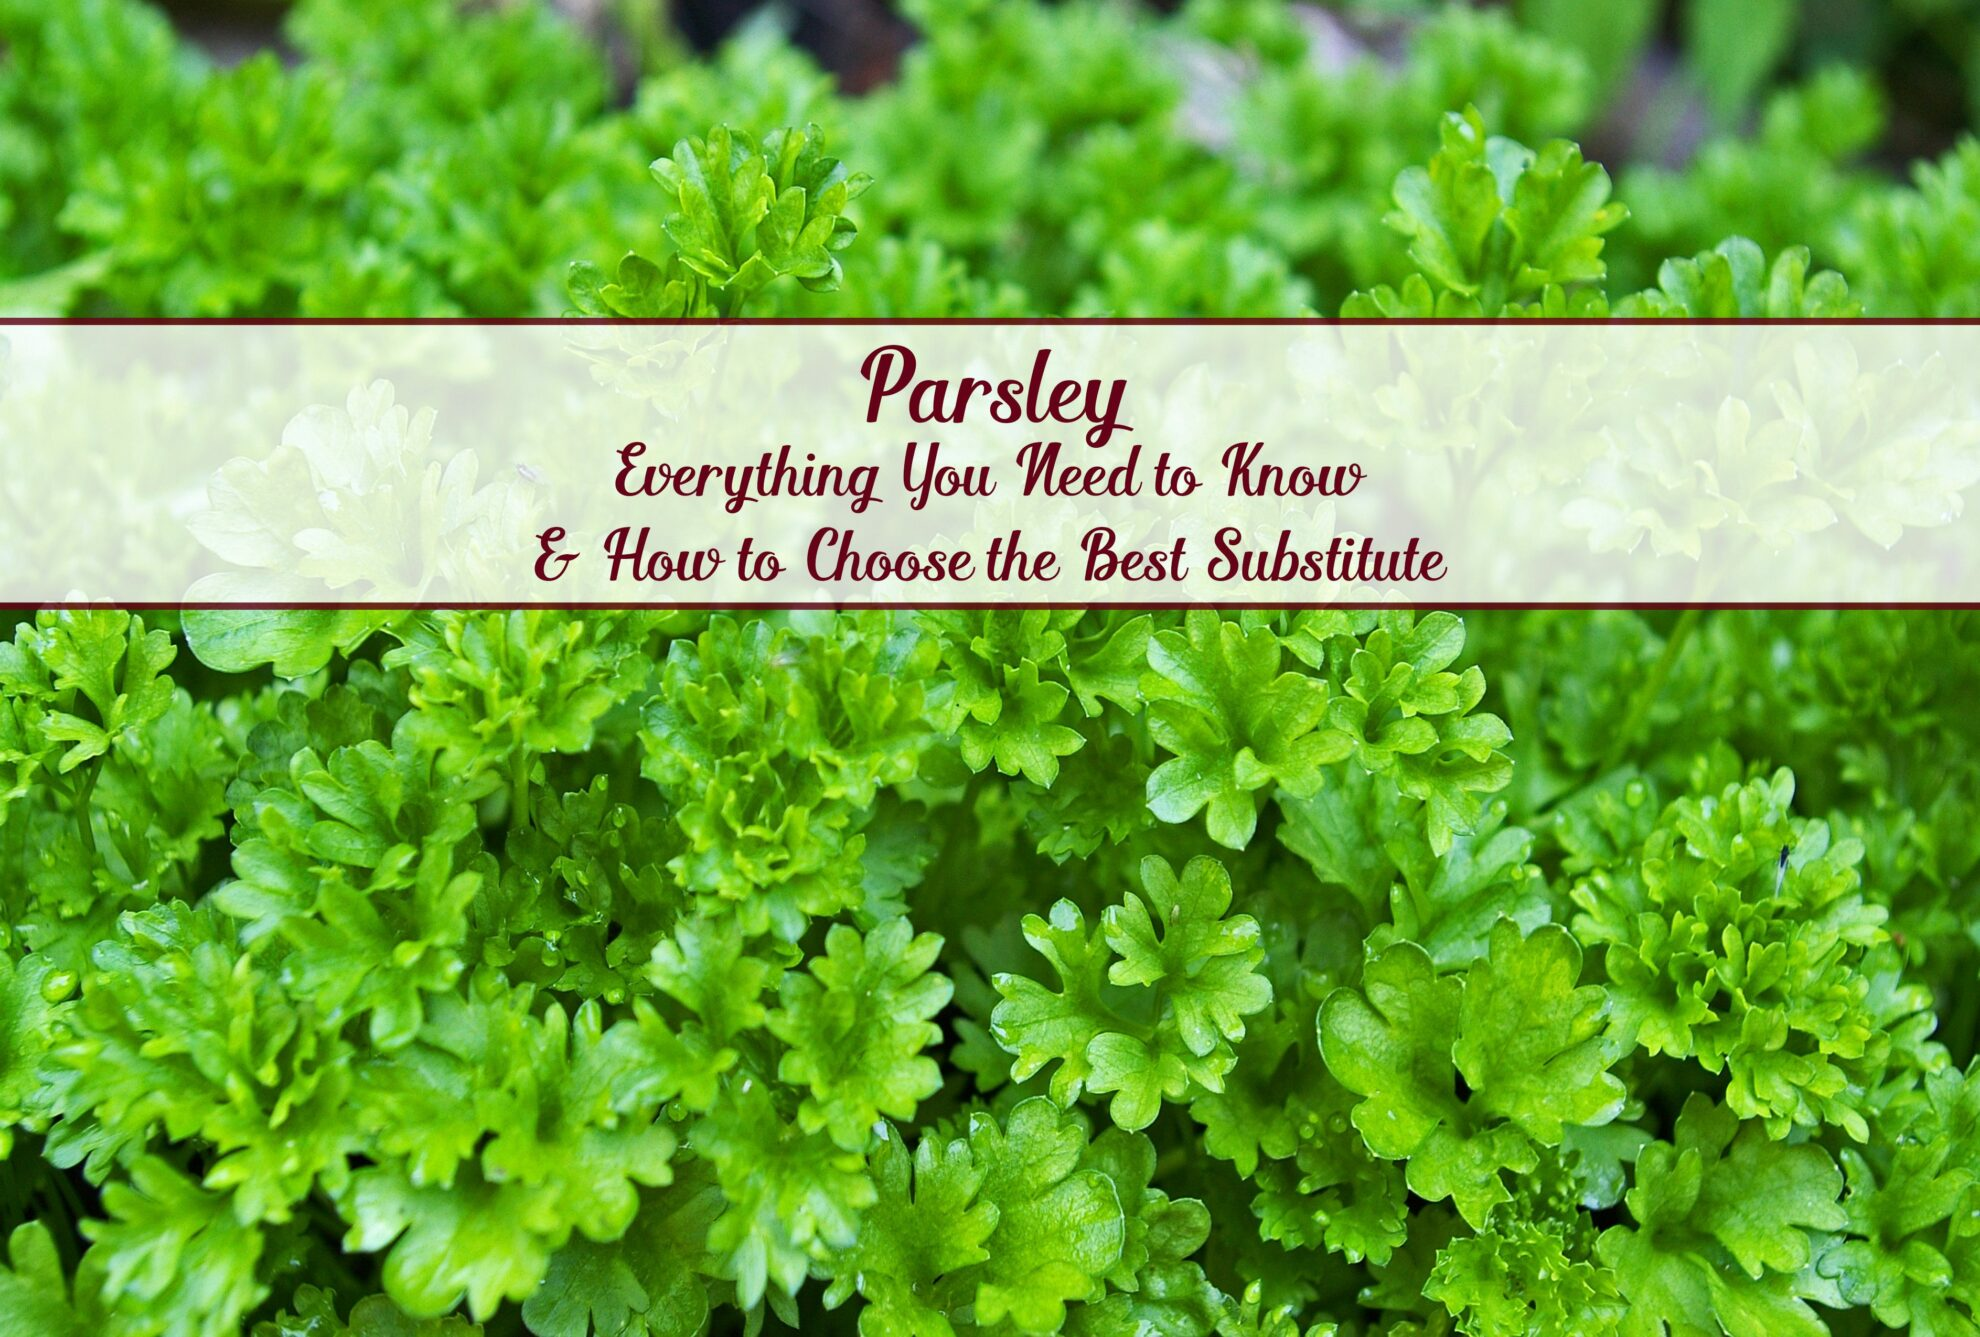 All About Parsley And How To Choose The Best Substitute